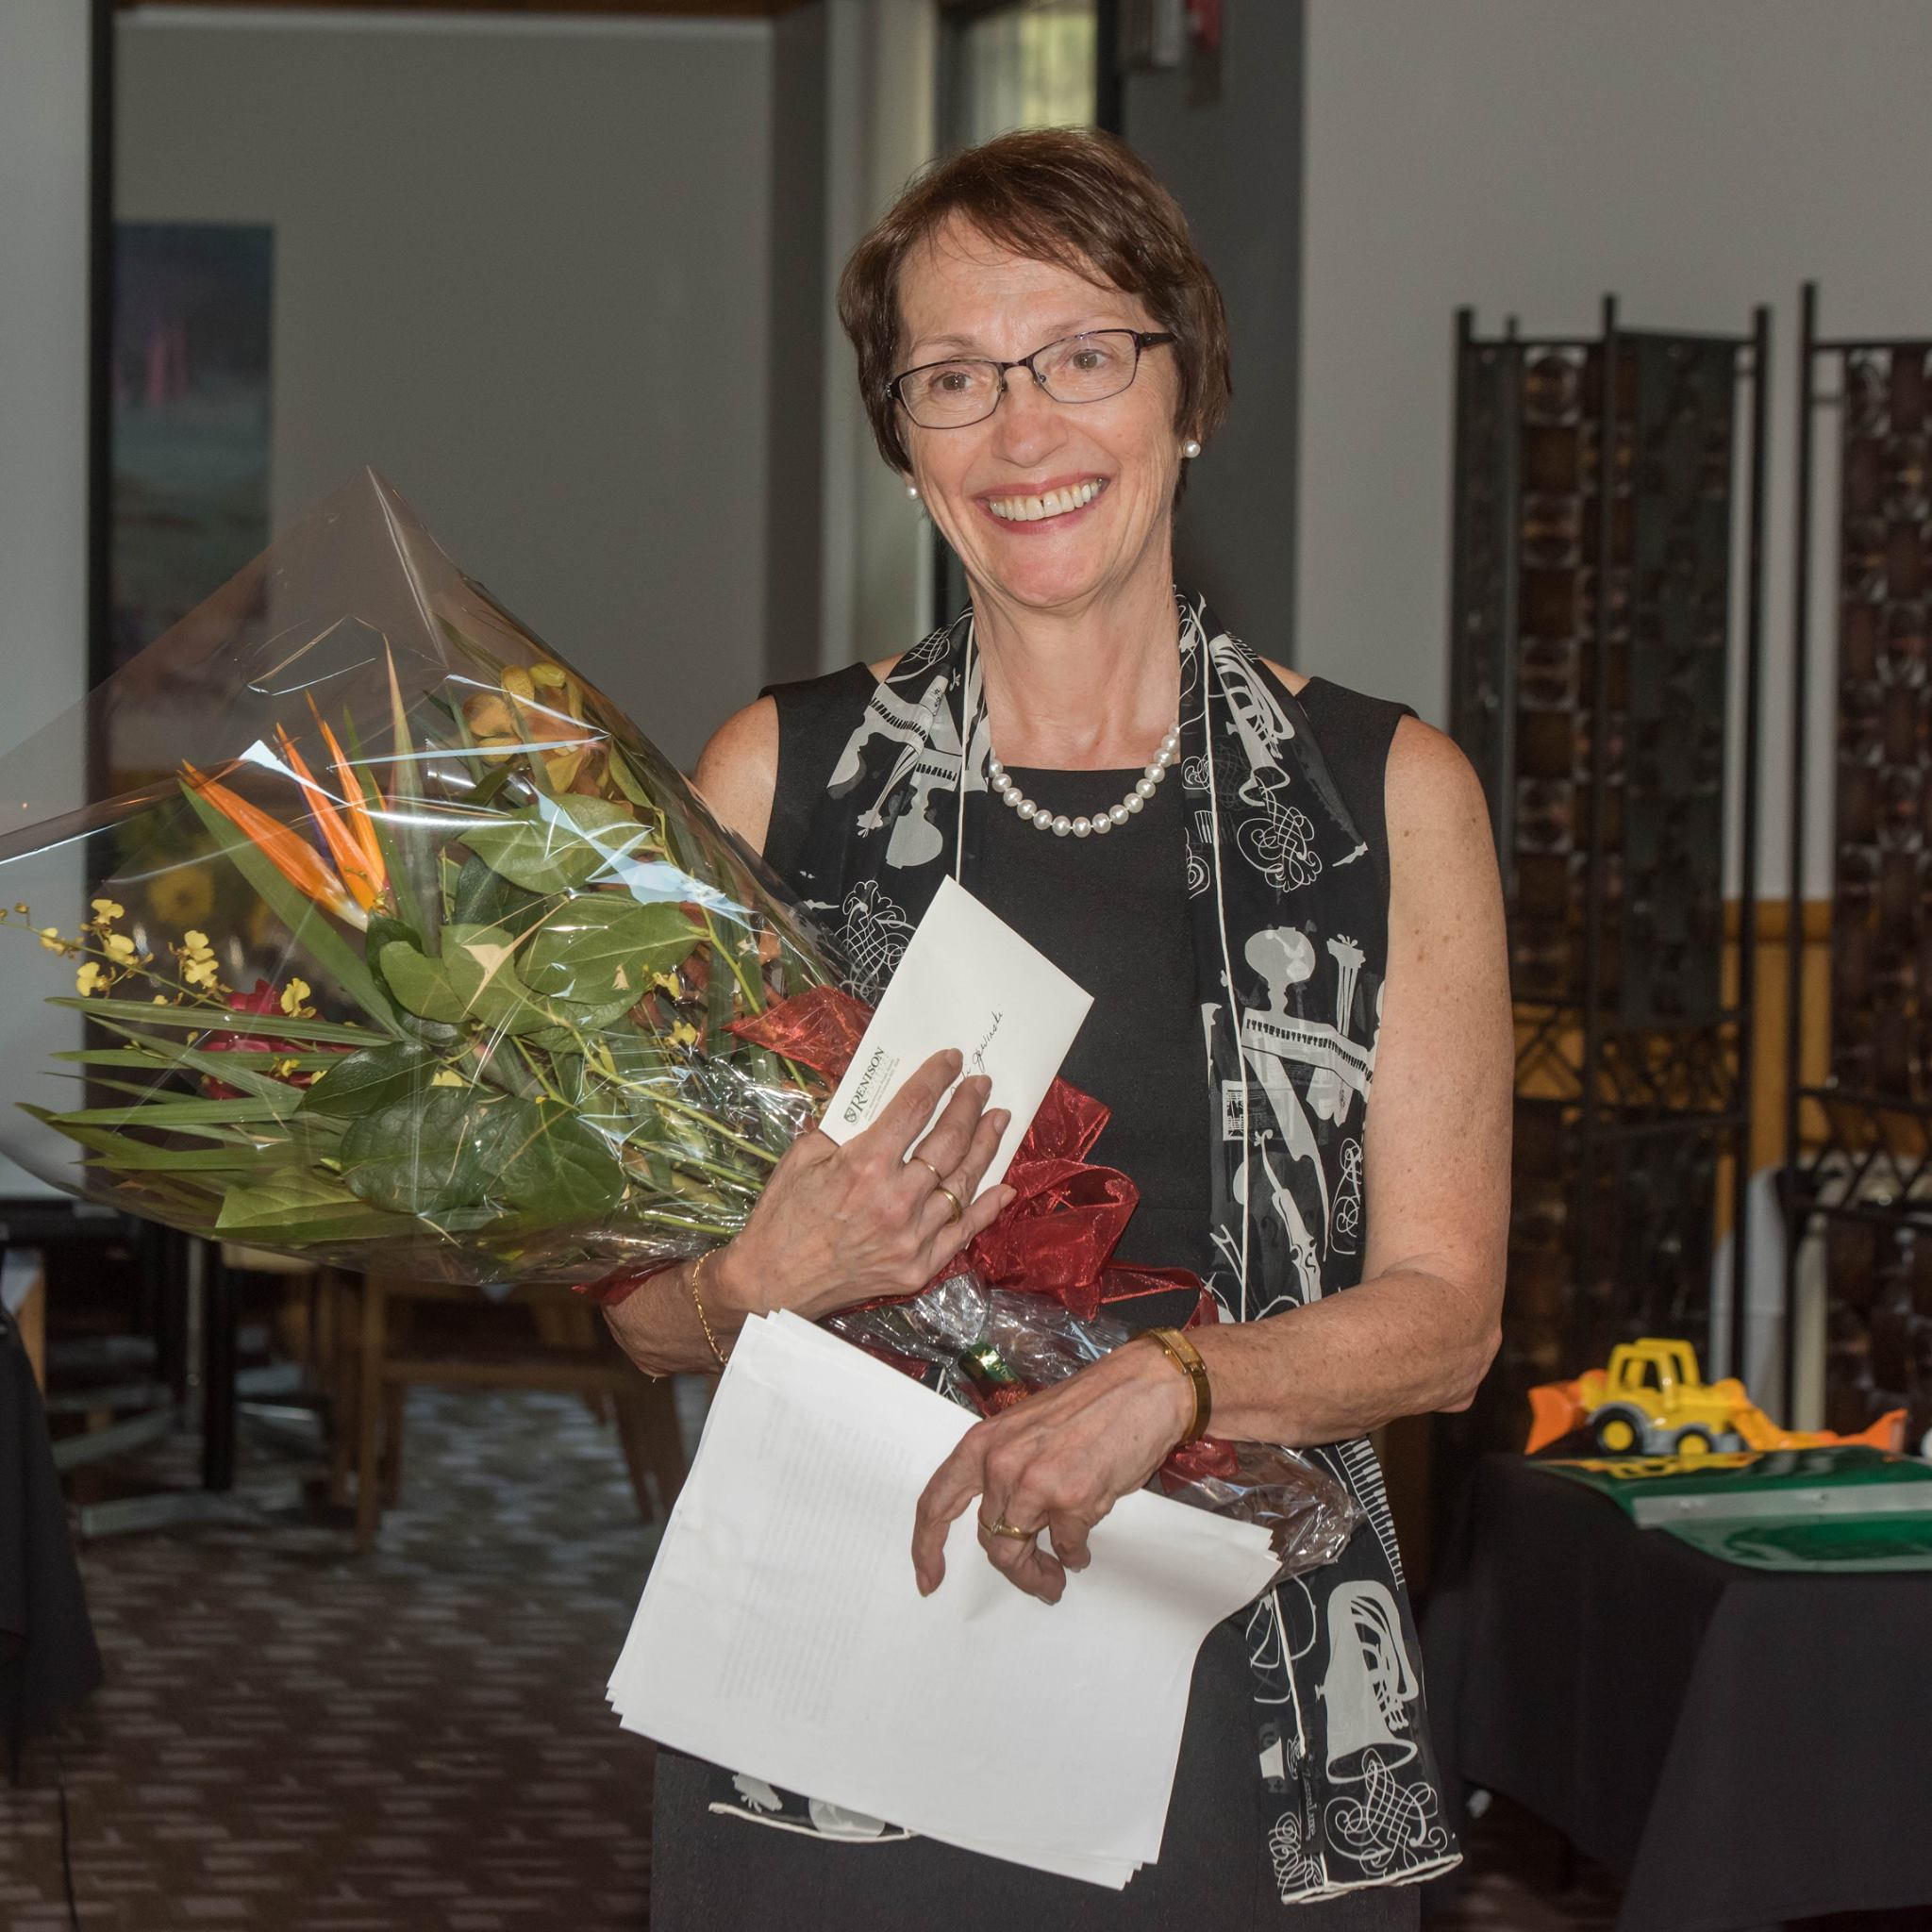 Judi Jewinski retires from Renison